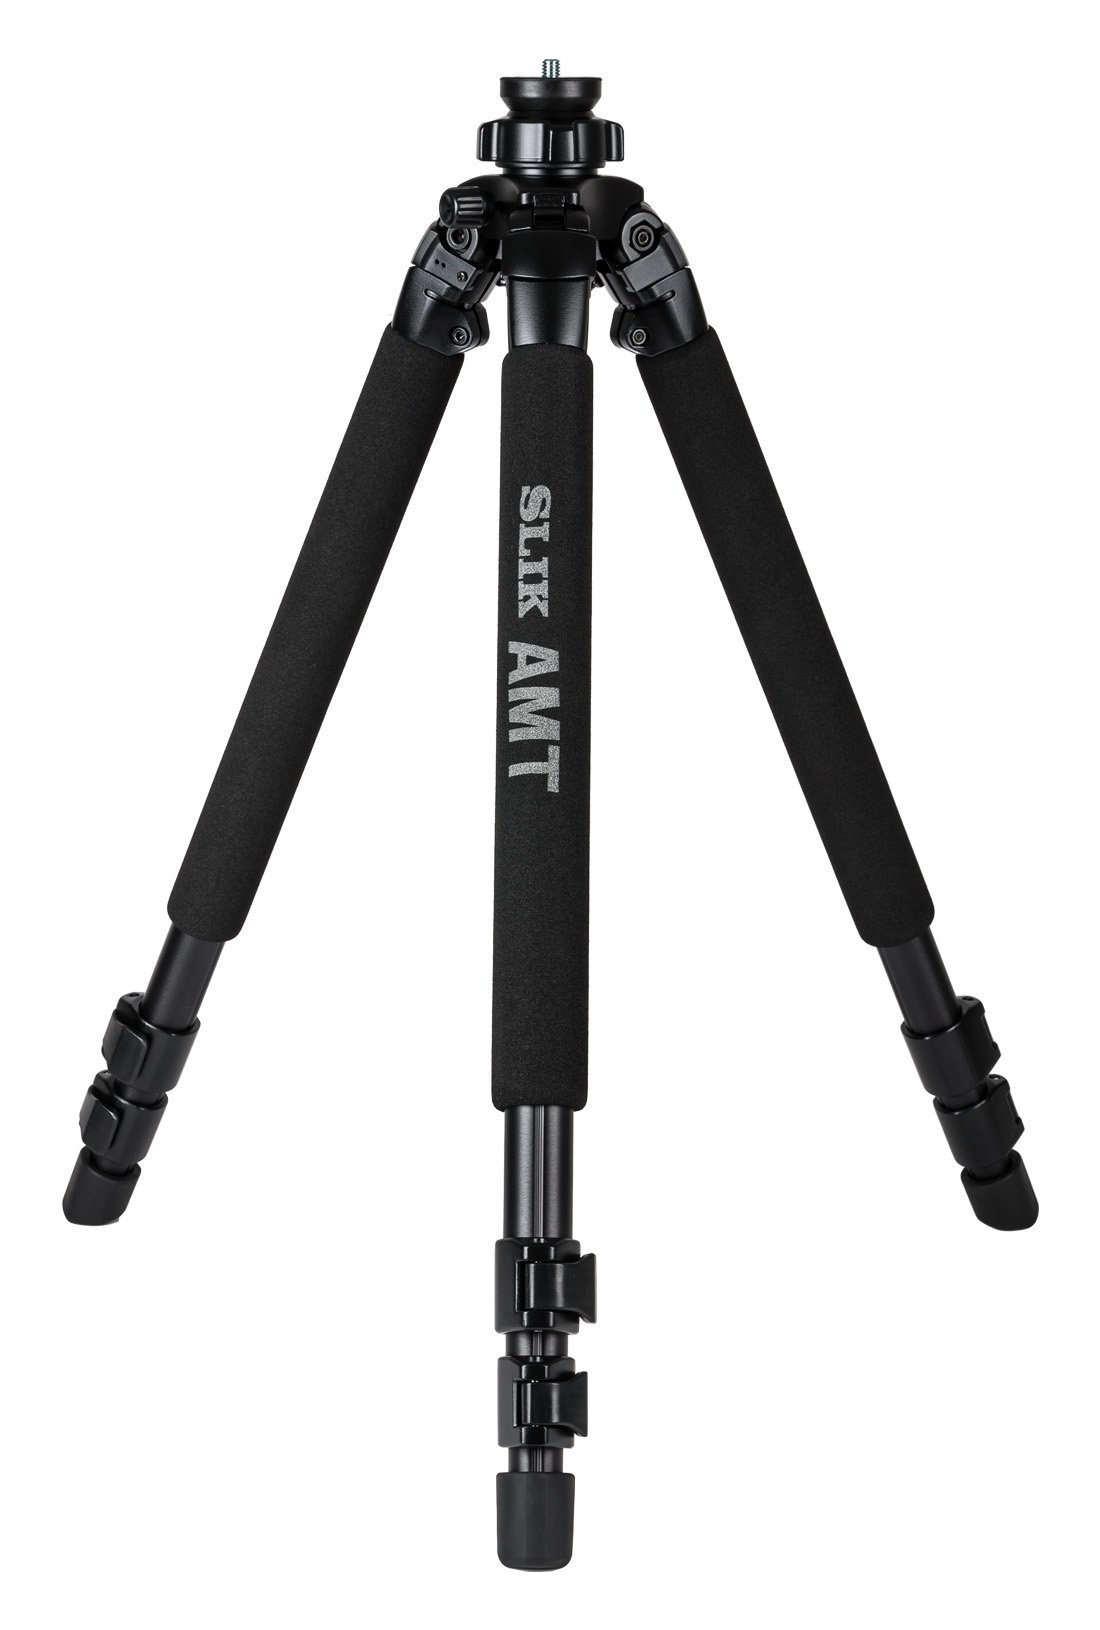 SLIK Pro 700 DX Tripod Legs - Black (Renewed)